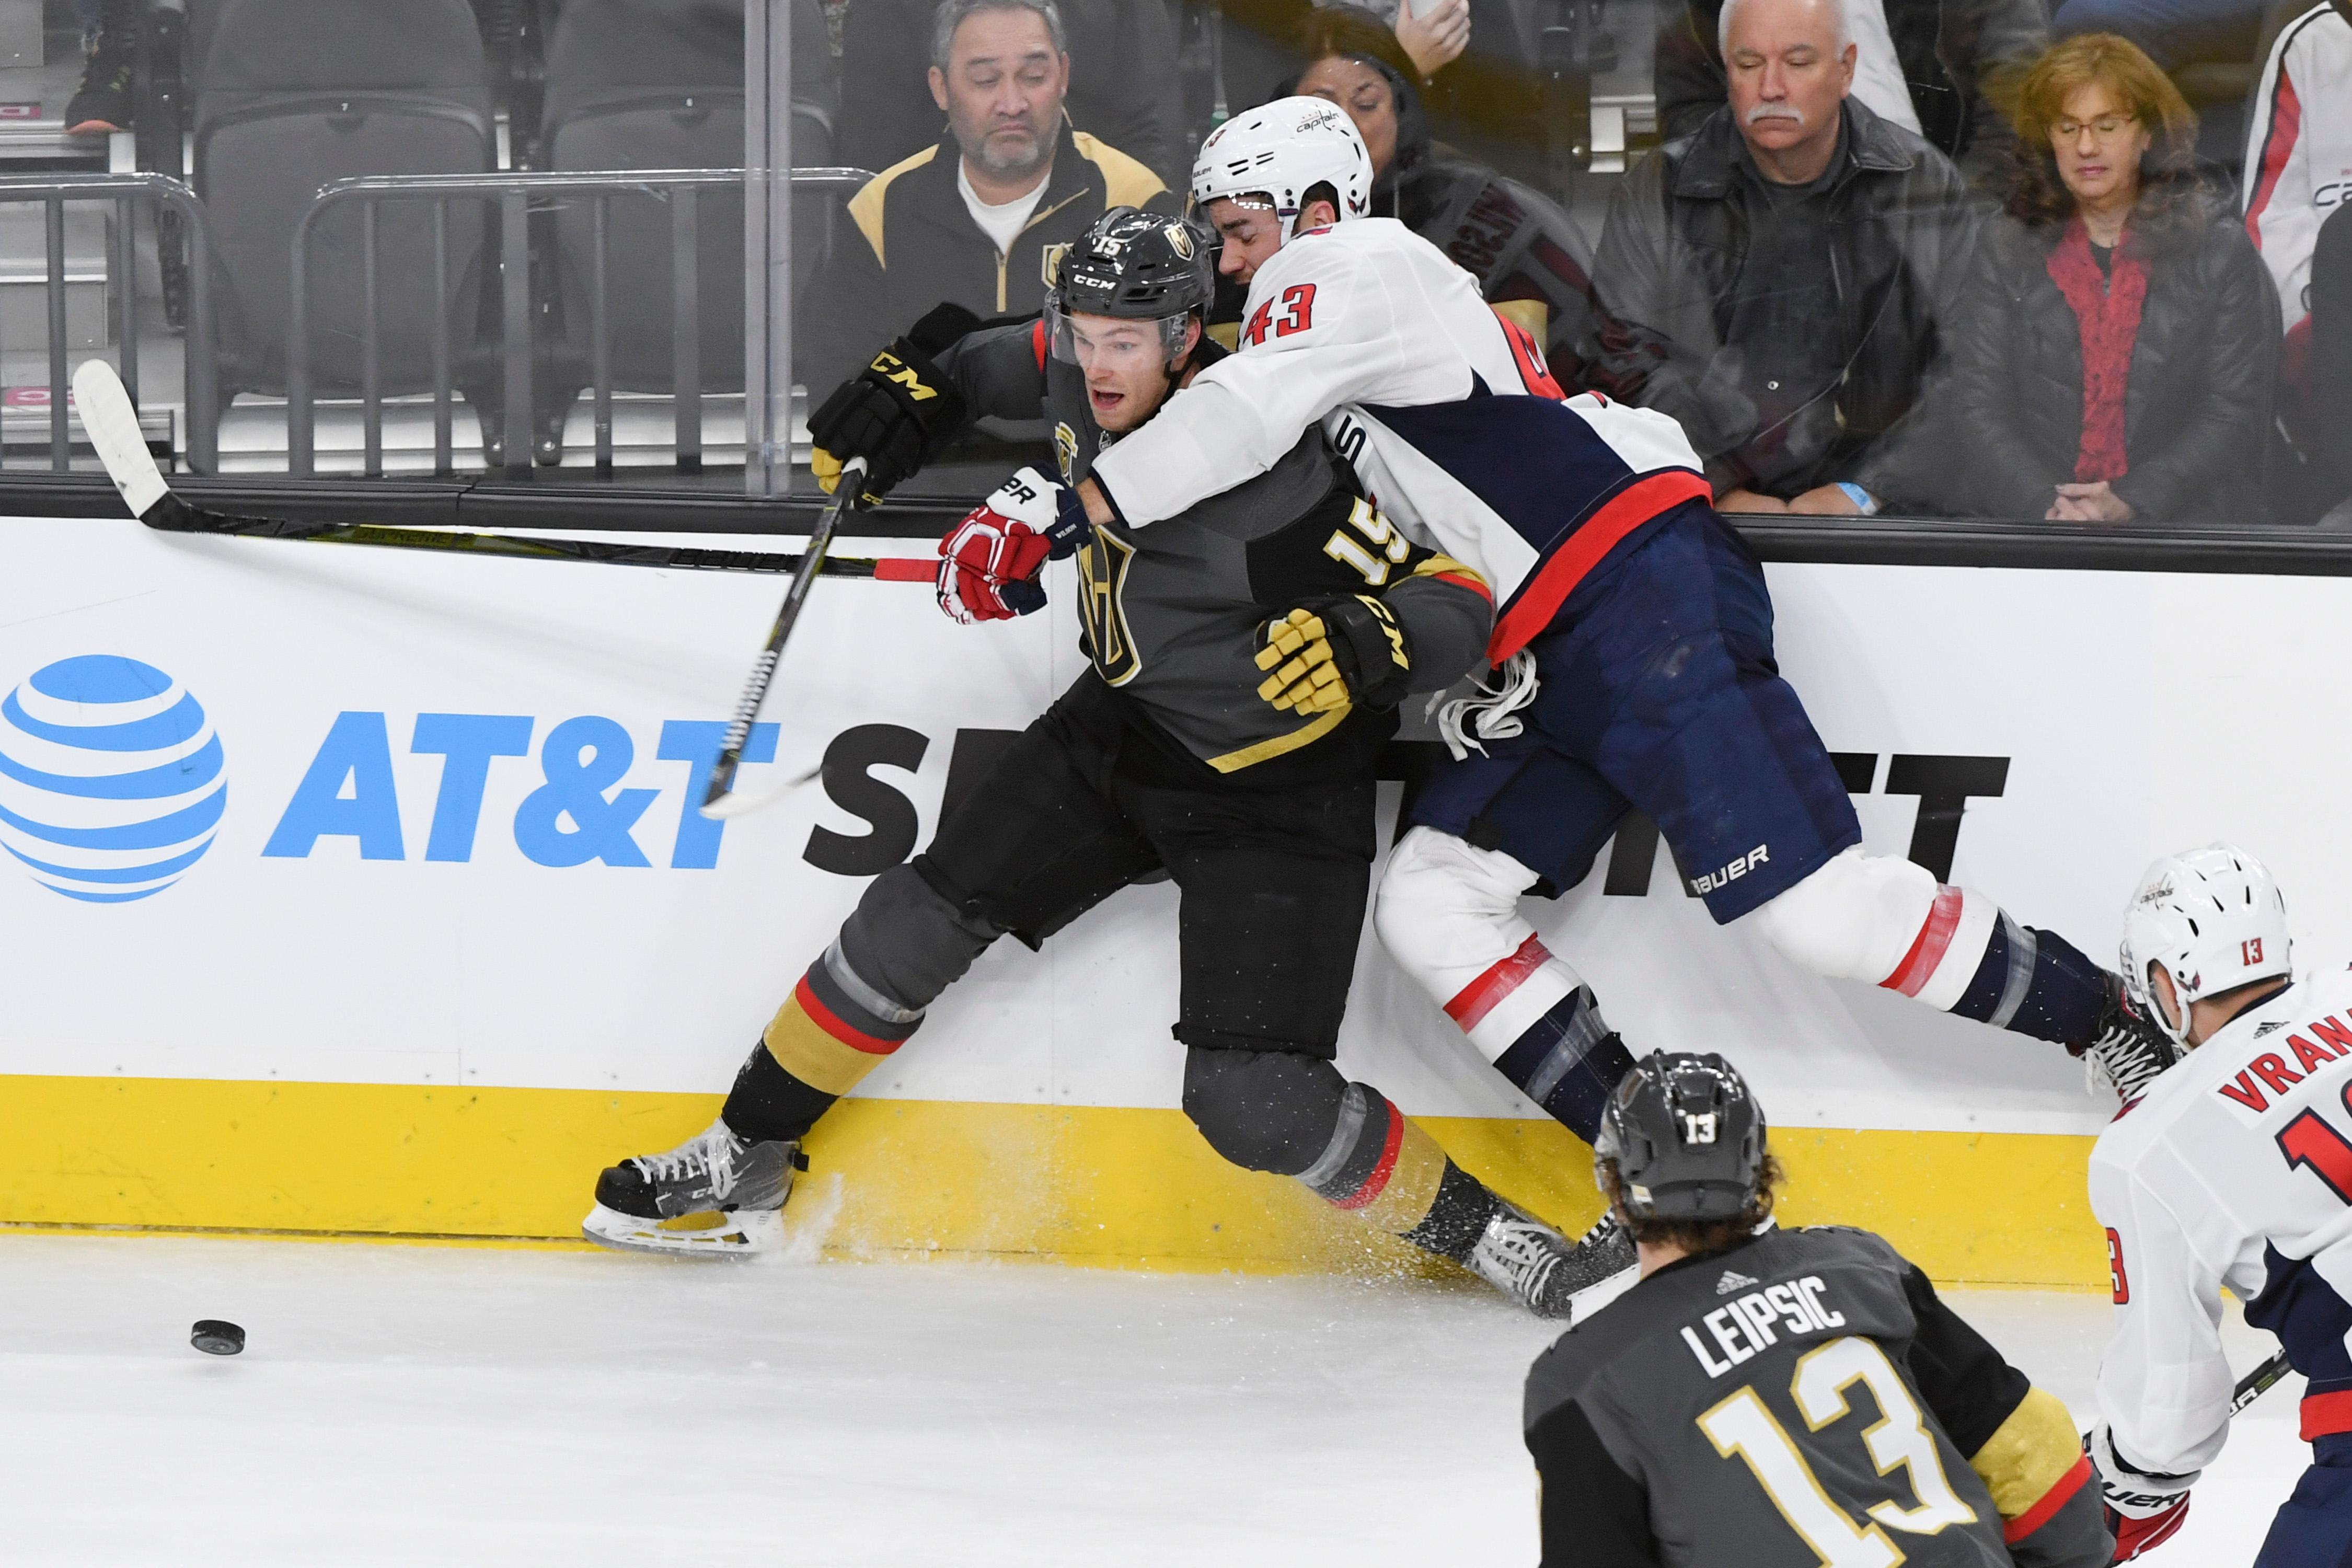 Washington Capitals right wing Tom Wilson (43) pulls Vegas Golden Knights defenseman Jon Merrill (15) into the boards during their NHL hockey game Saturday, December 23, 2017, at T-Mobile Arena in Las Vegas.  CREDIT: Sam Morris/Las Vegas News Bureau